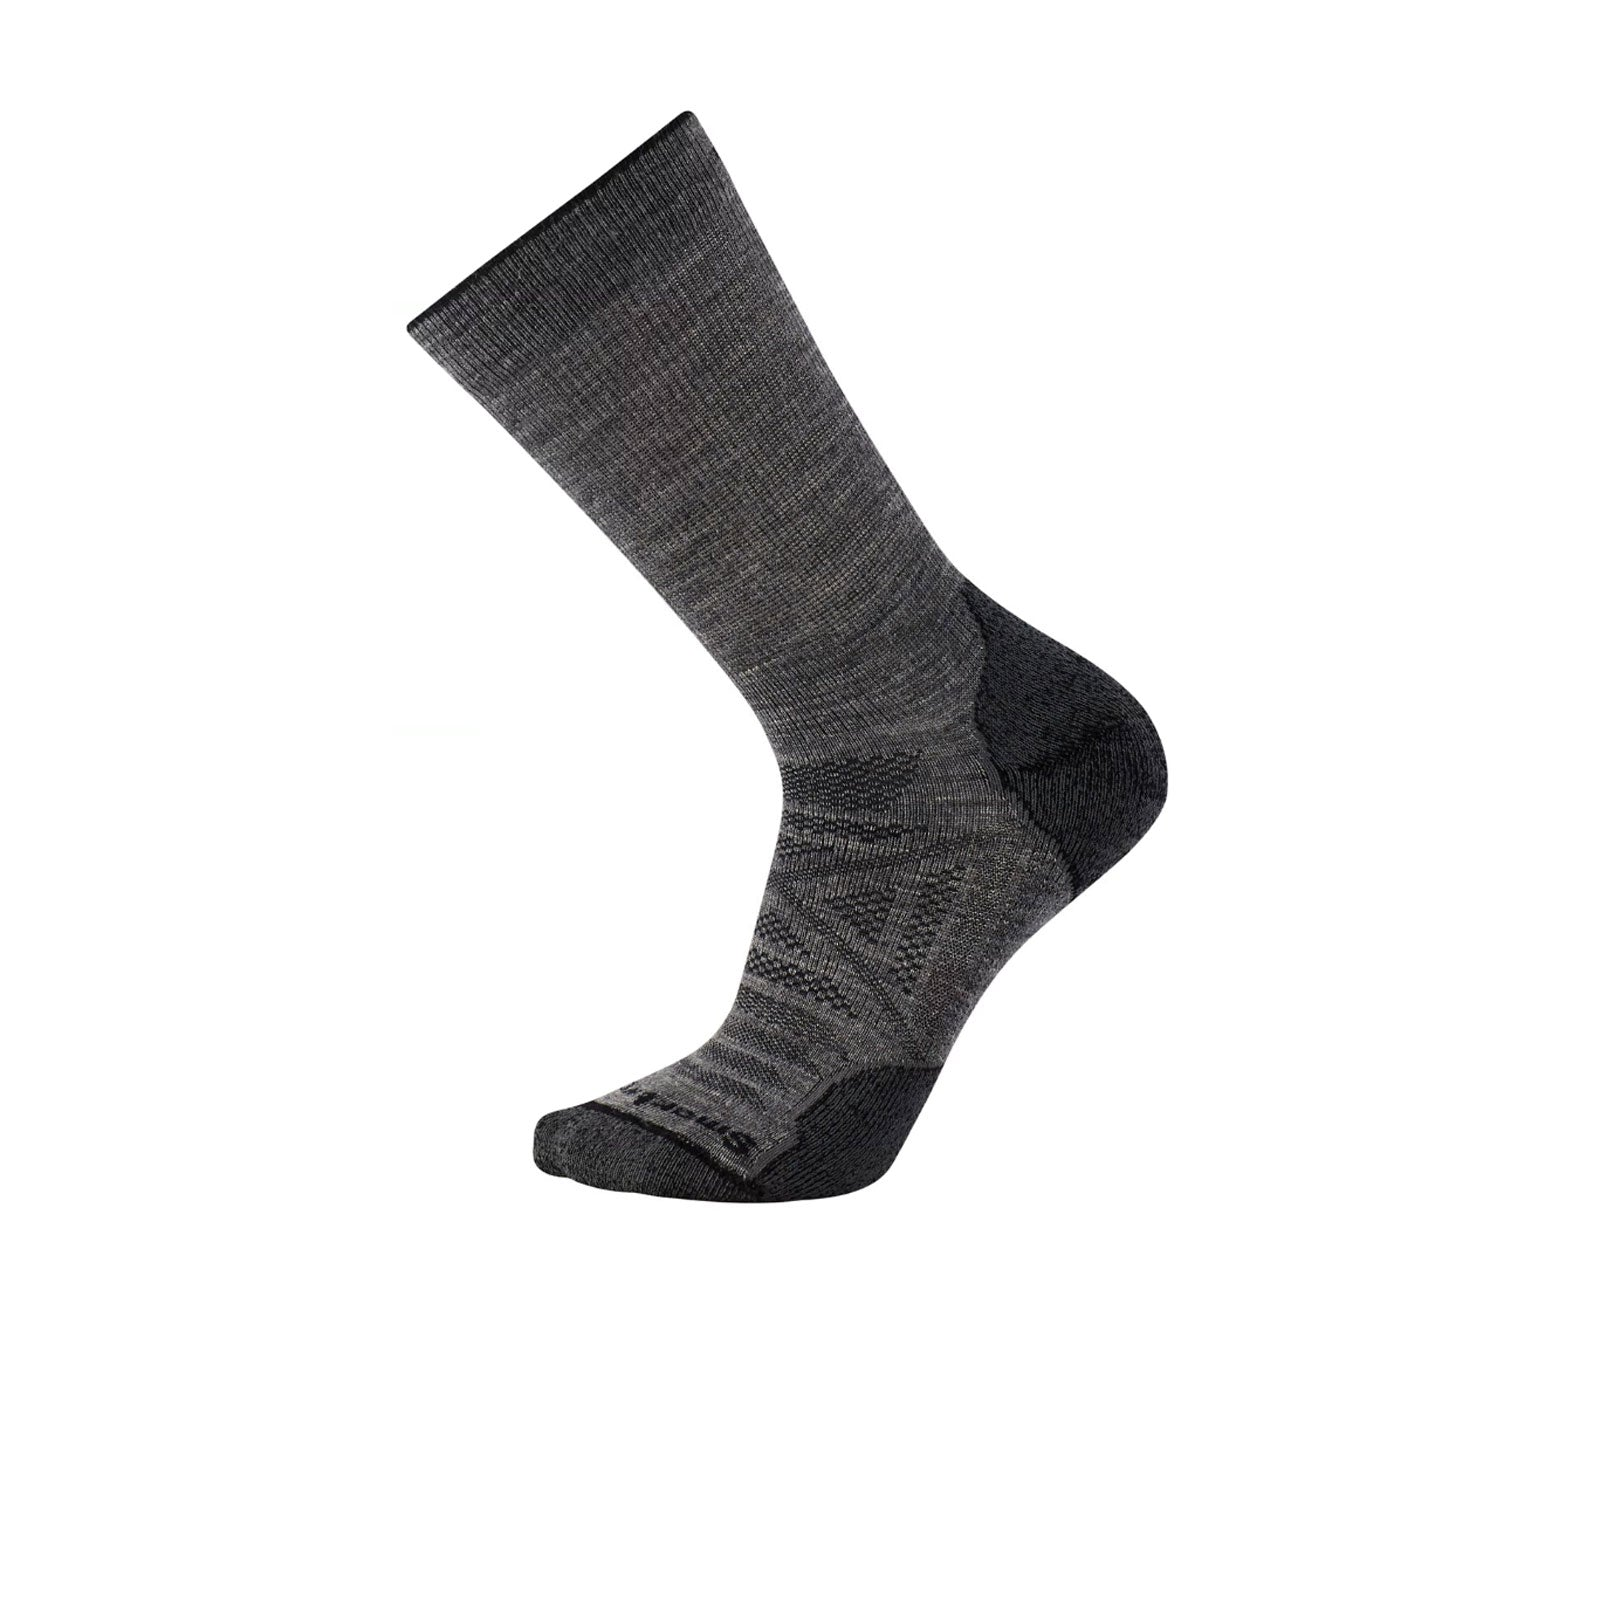 Smartwool PhD Outdoor Light Crew (Men) - Medium Gray Socks - Perf - Crew - The Heel Shoe Fitters